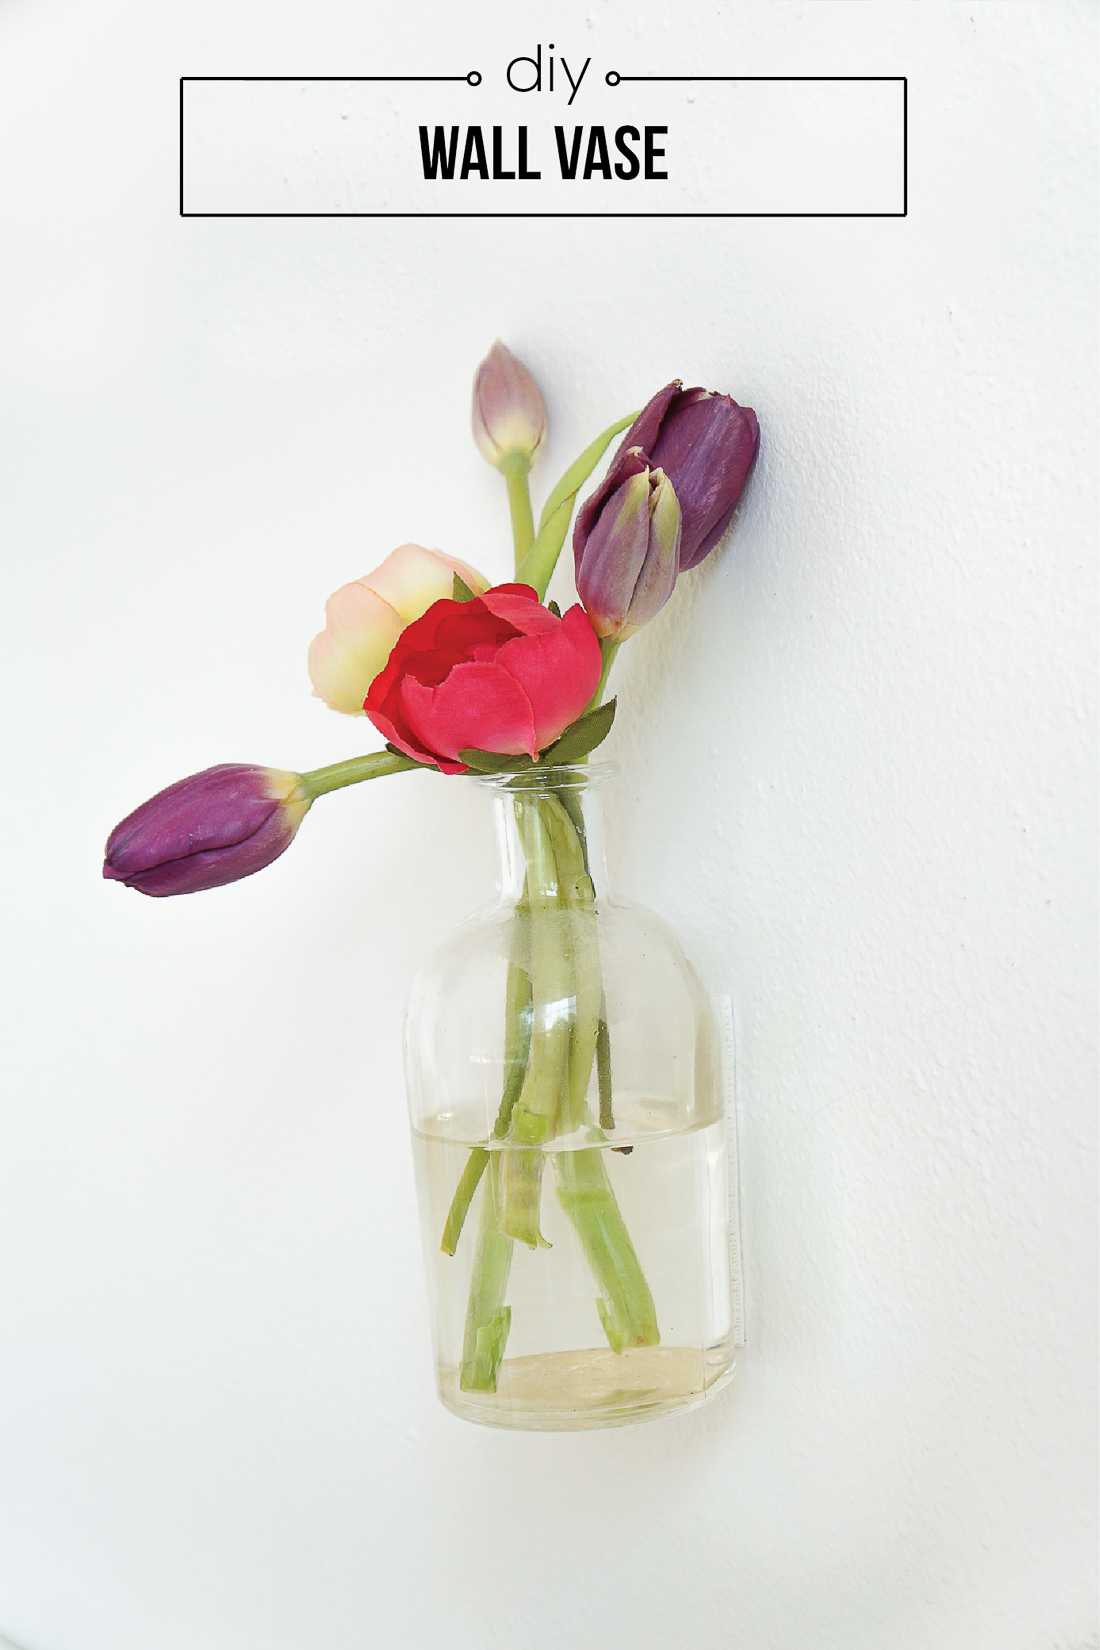 Hang flowers on vertical spaces fast, easily, and non-permanently with this 5 minute DIY wall vase. Click for the details!